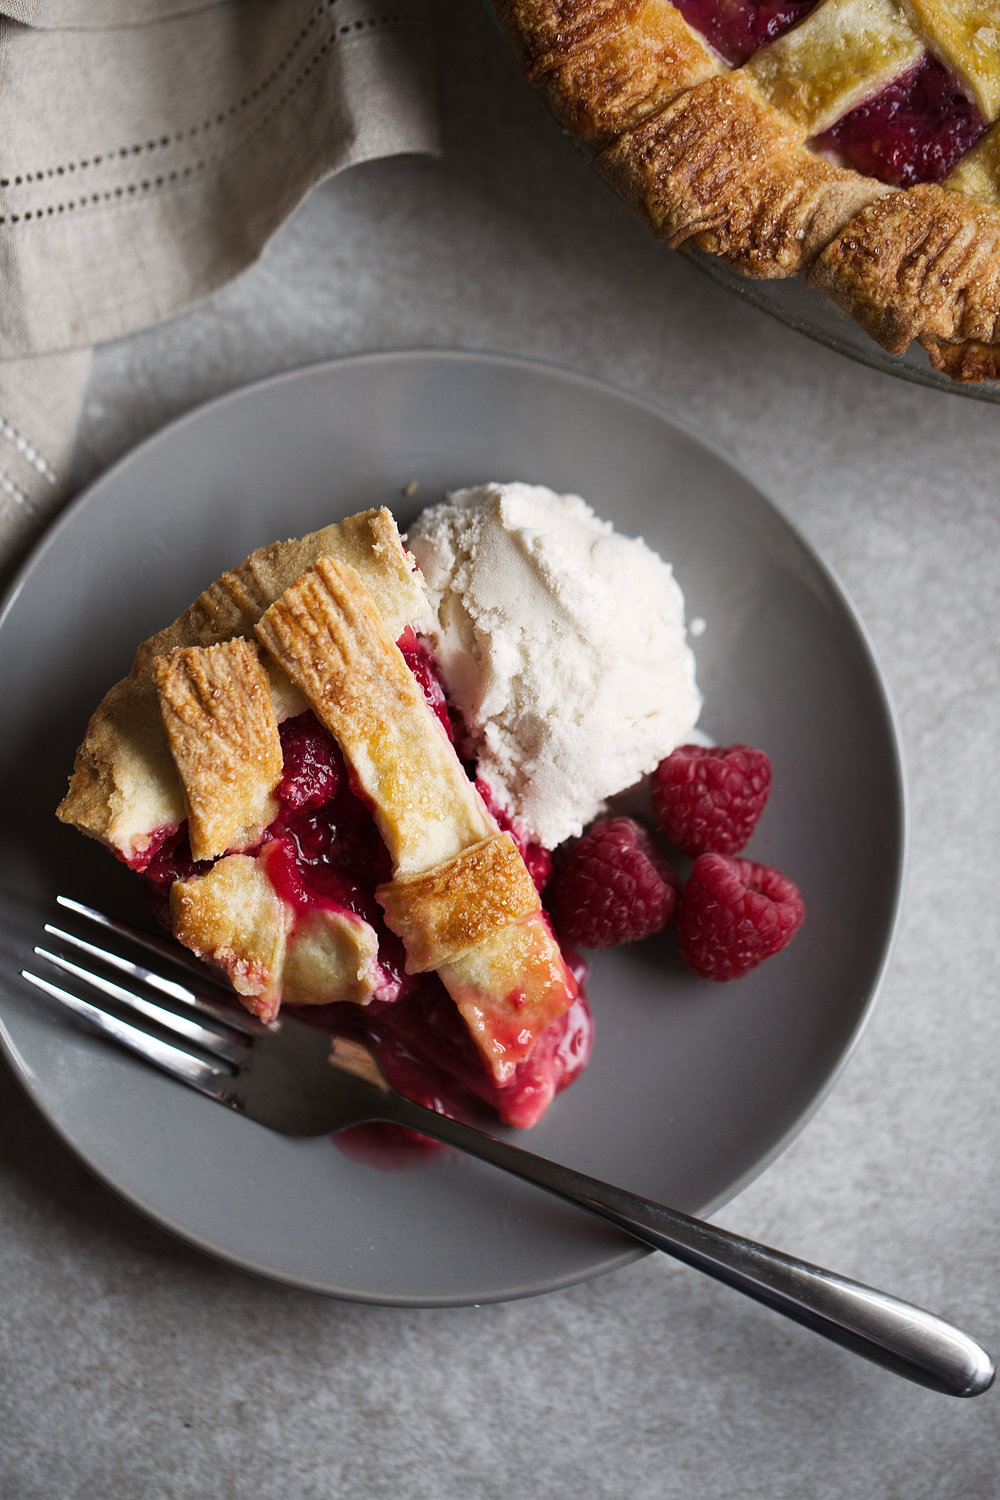 Raspberry Pie with Shortbread Crust closeup slice